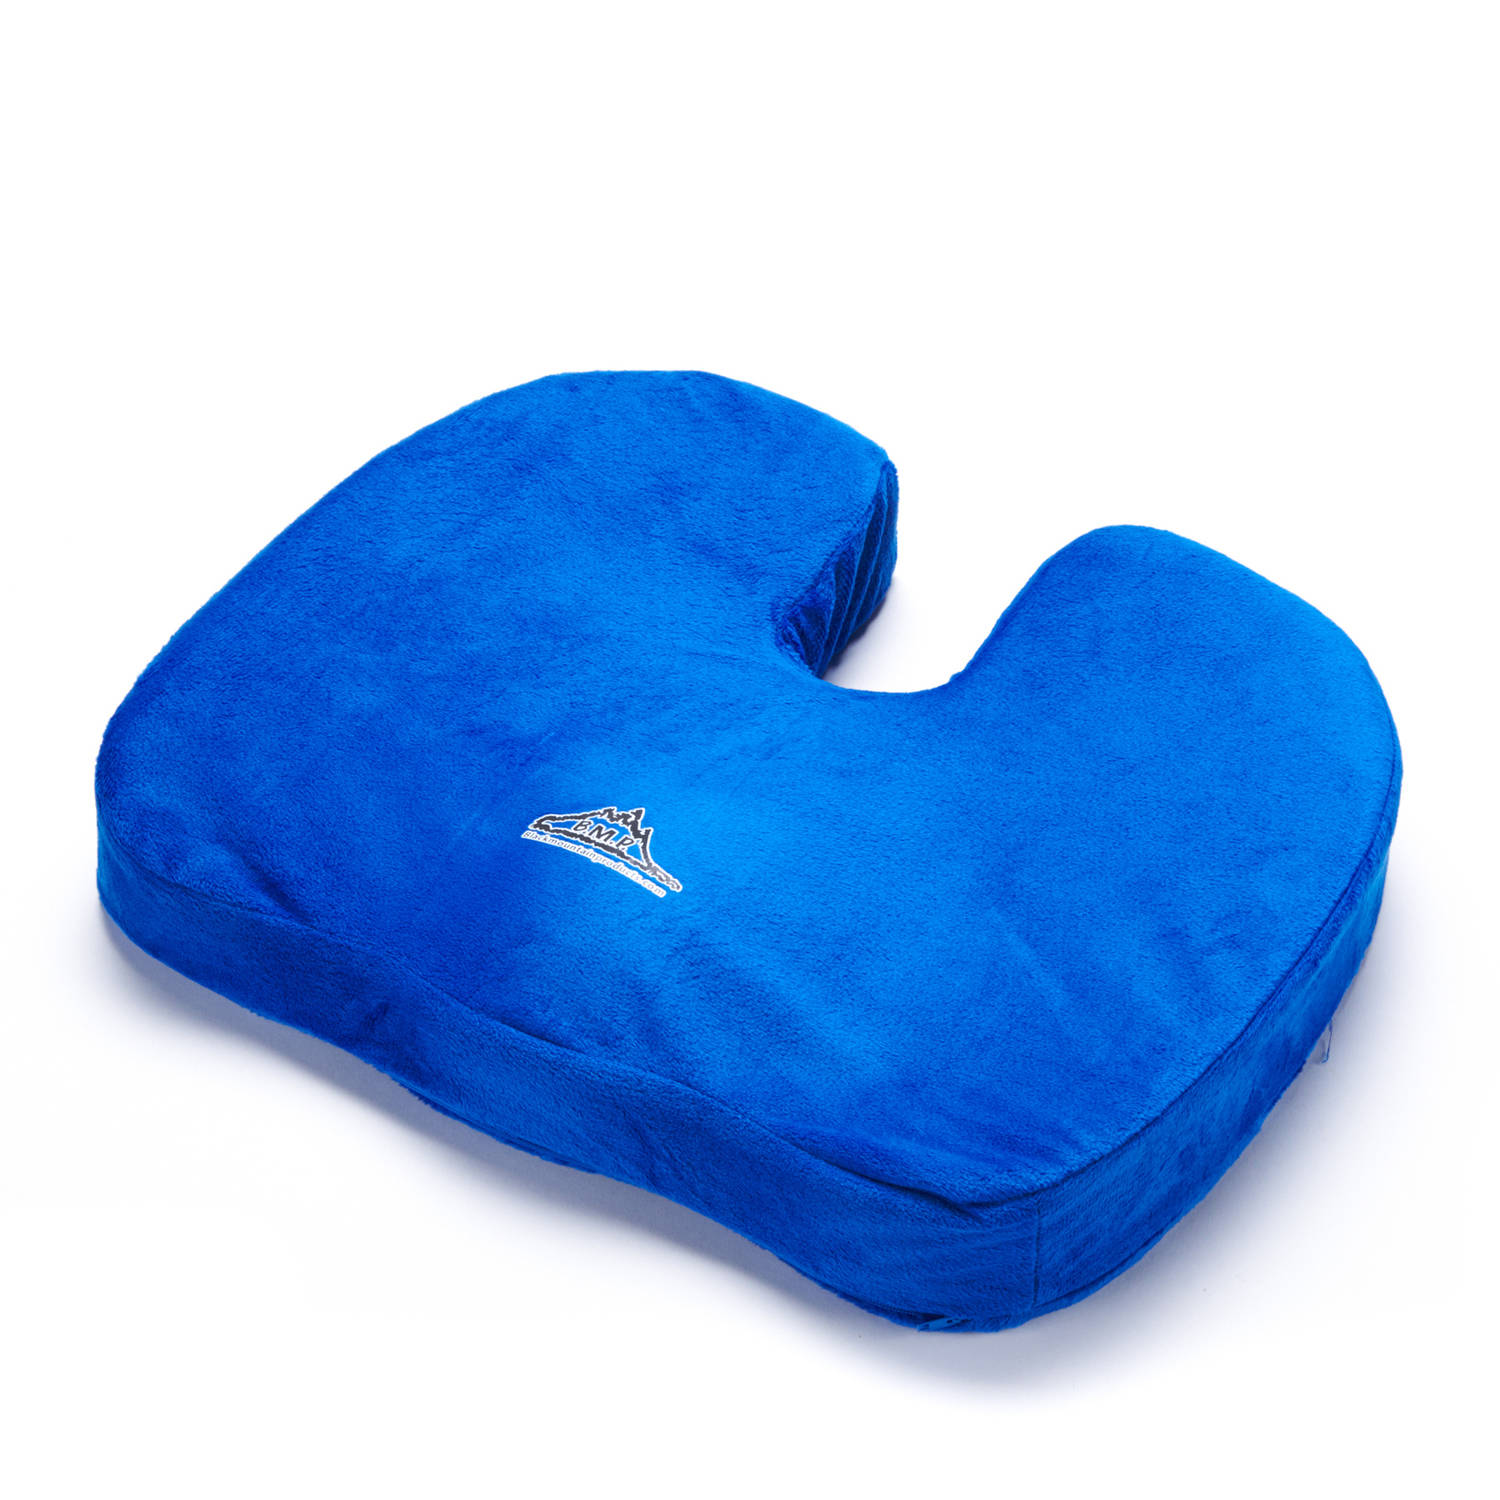 Black Mountain Products Orthopedic Comfort and Stadium Seat Cushion -  Walmart.com - Black Mountain Products Orthopedic Comfort And Stadium Seat